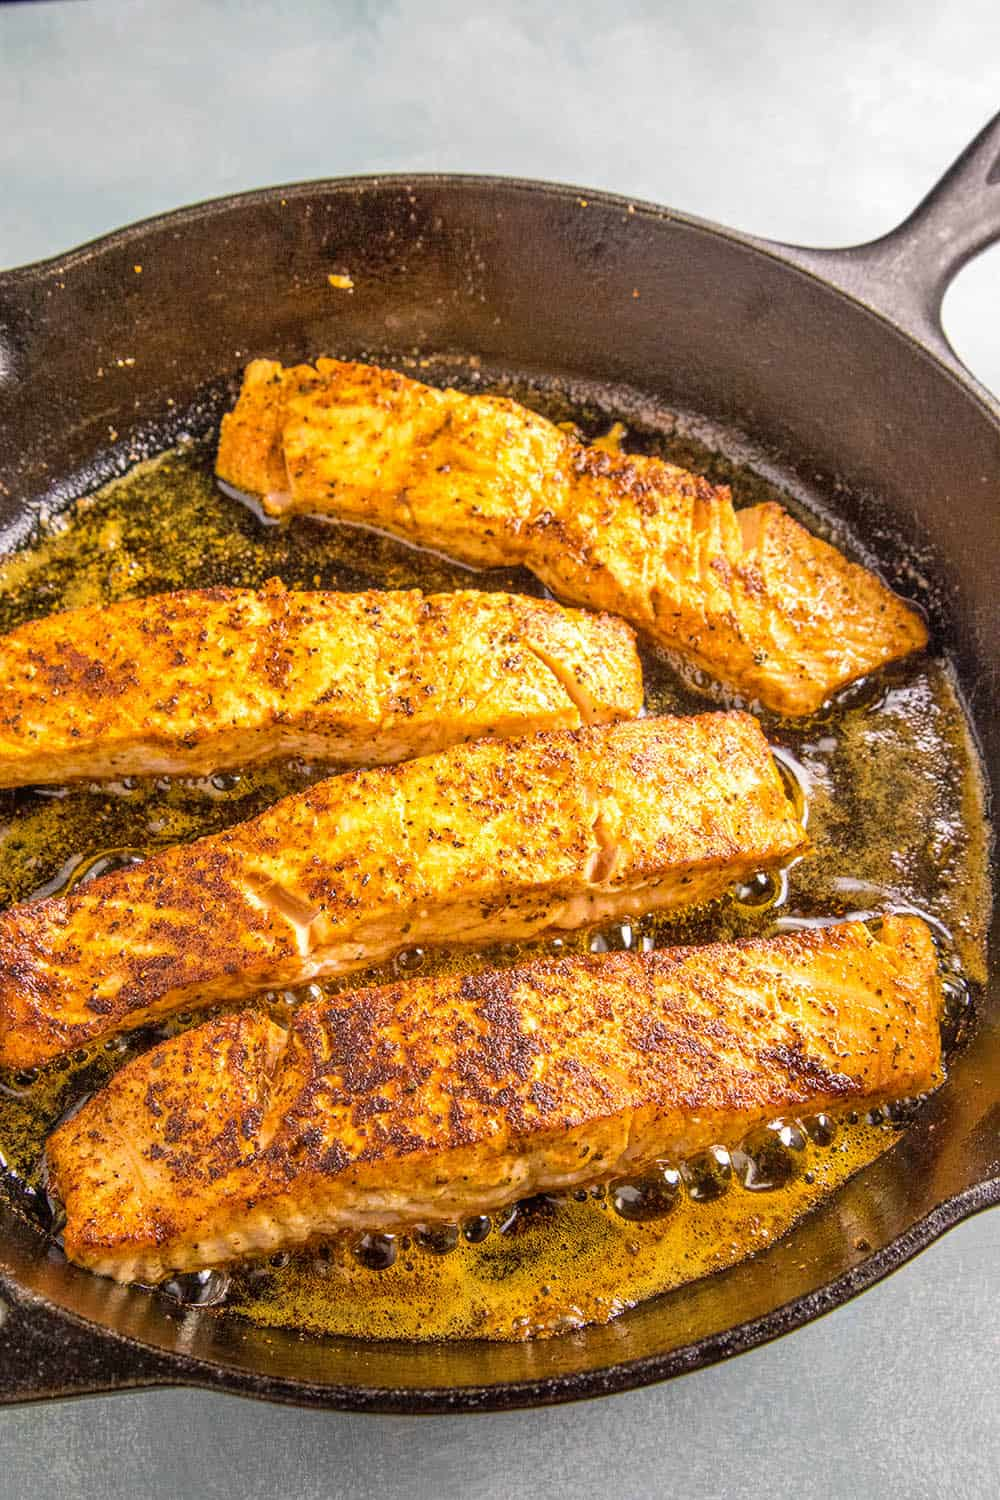 Searing the Blackened Salmon in a pan